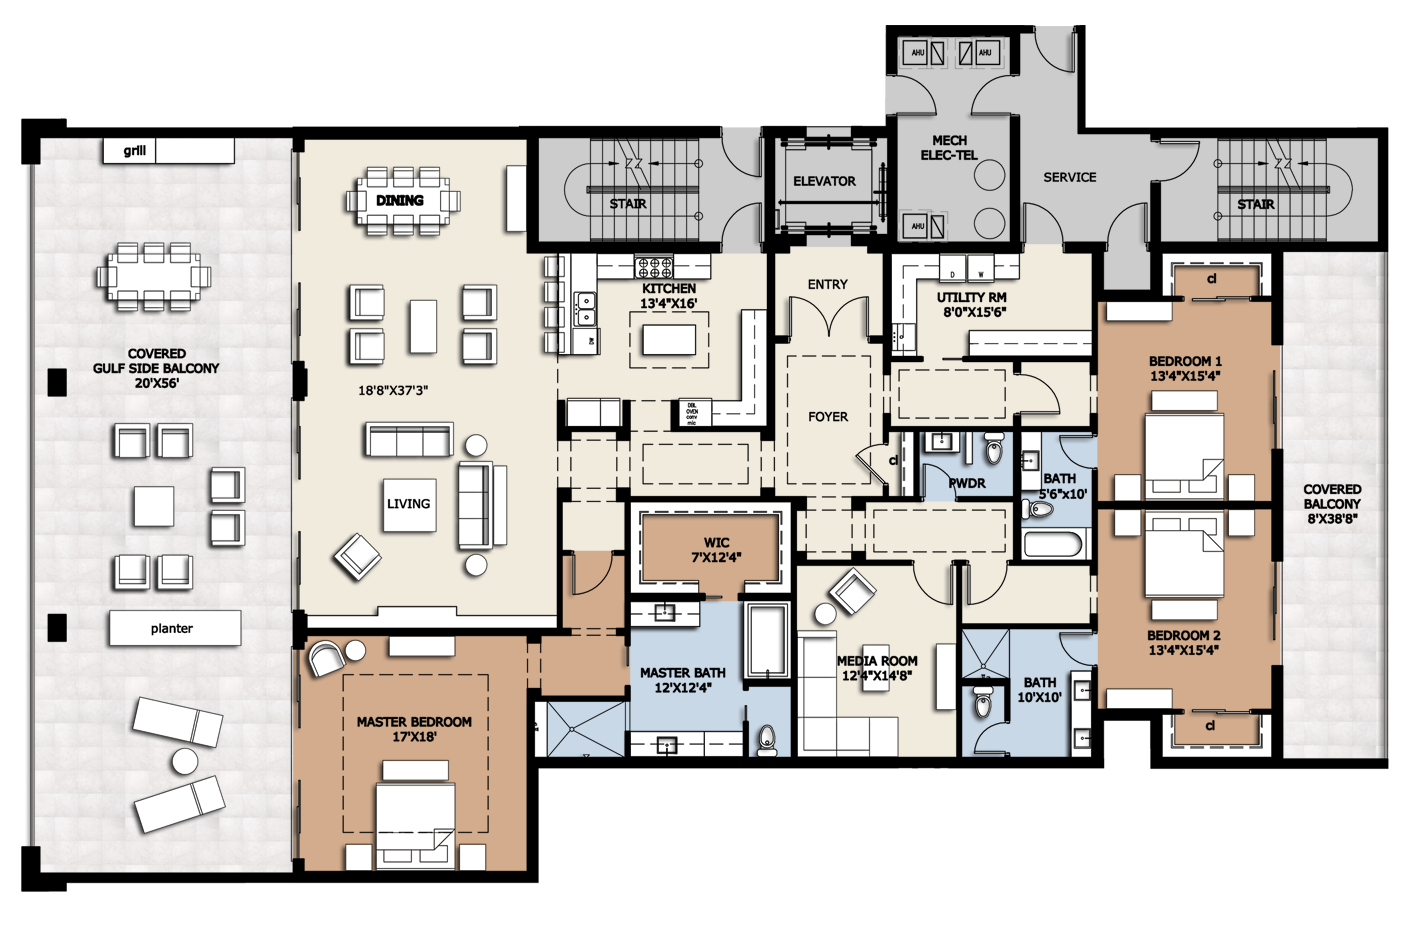 Floor plan residence b infinity longboat key condos for for House blueprints for sale